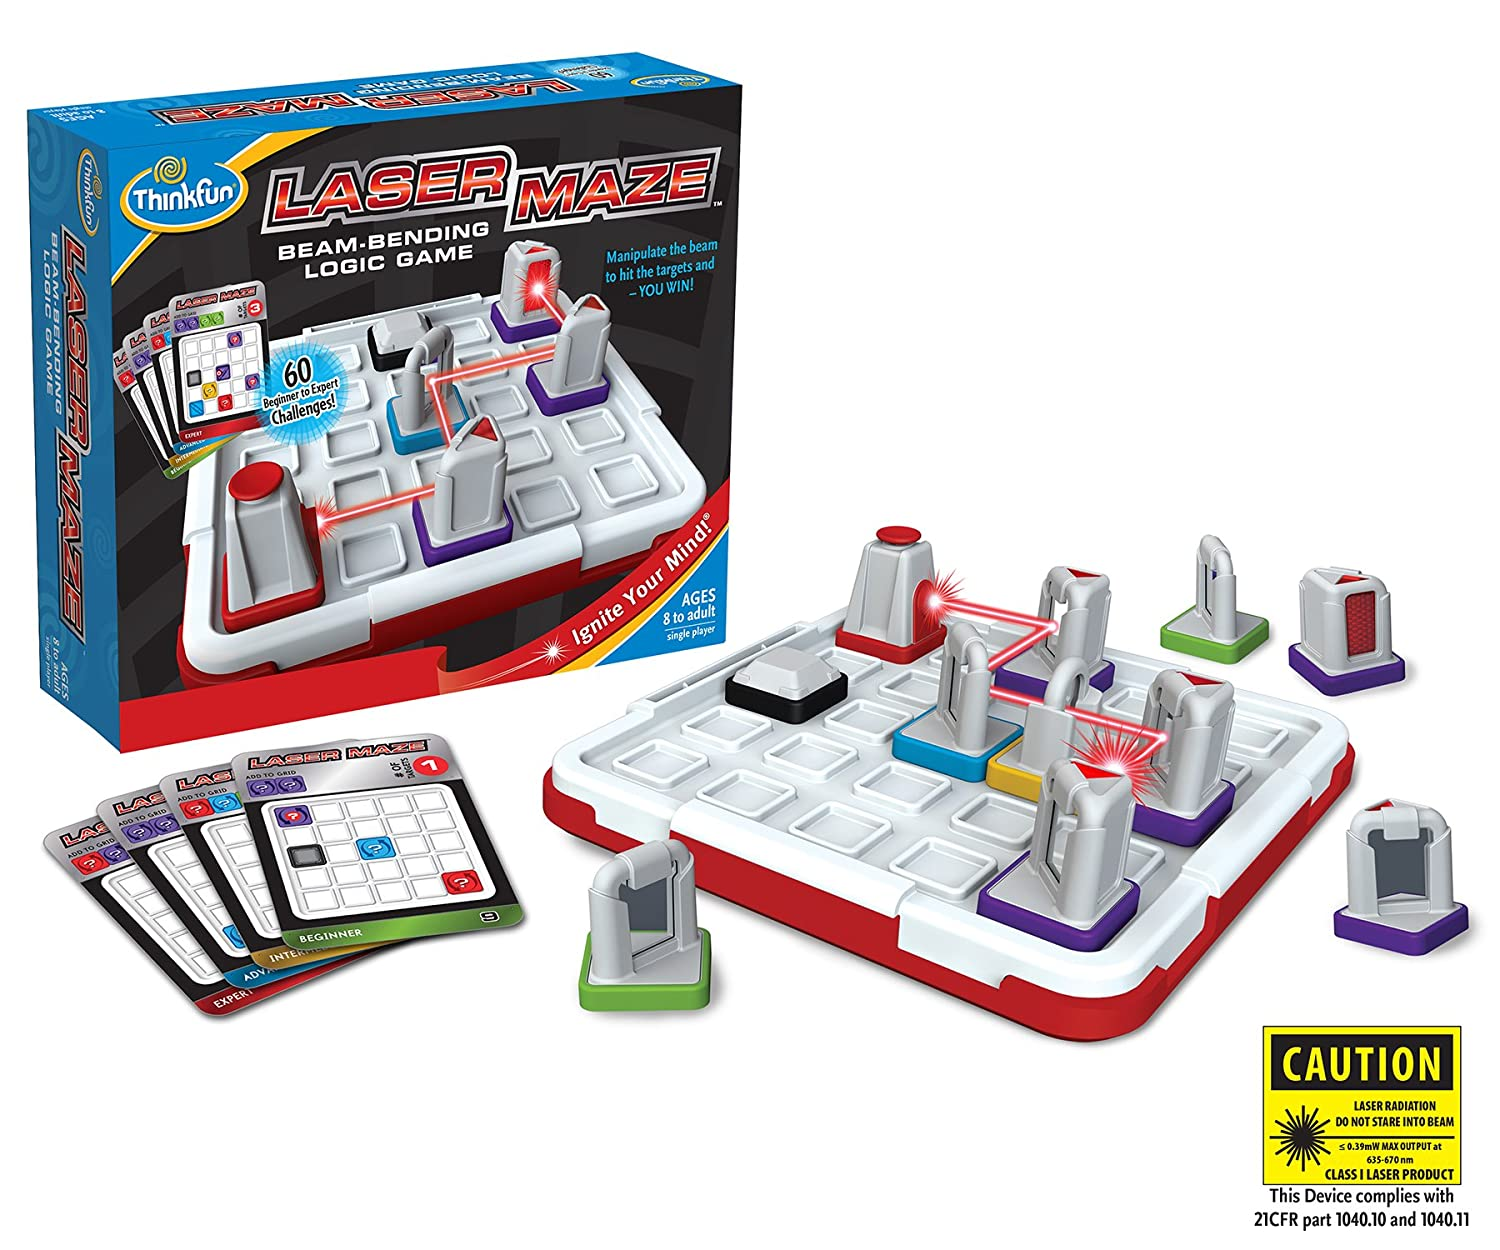 ThinkFun Laser Maze (Class 1) Logic Game and STEM Toy for Boys and Girls